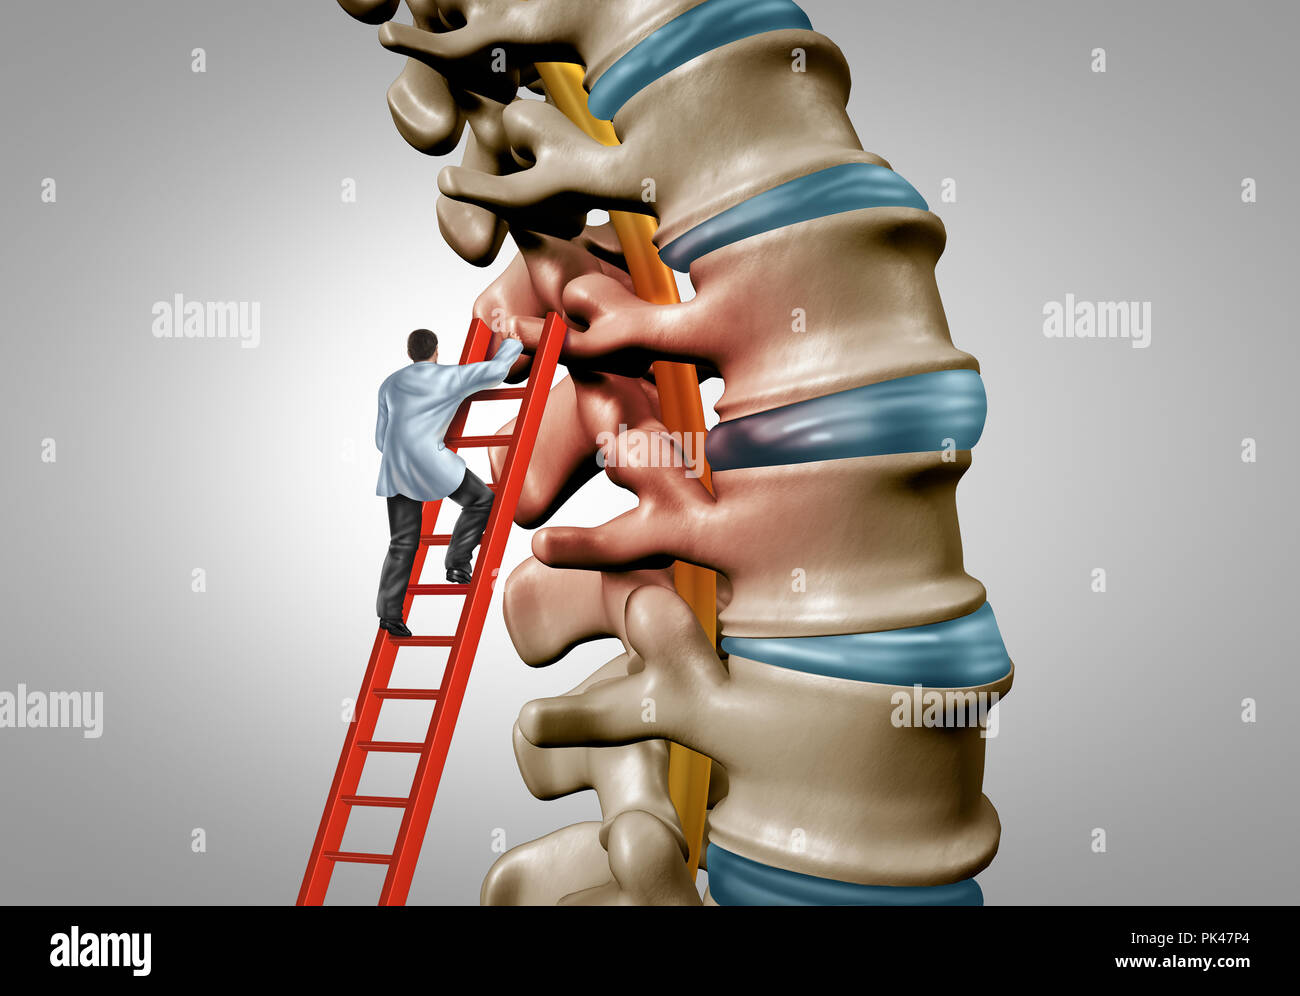 Spine therapy and spinal stenosis medical surgery concept as